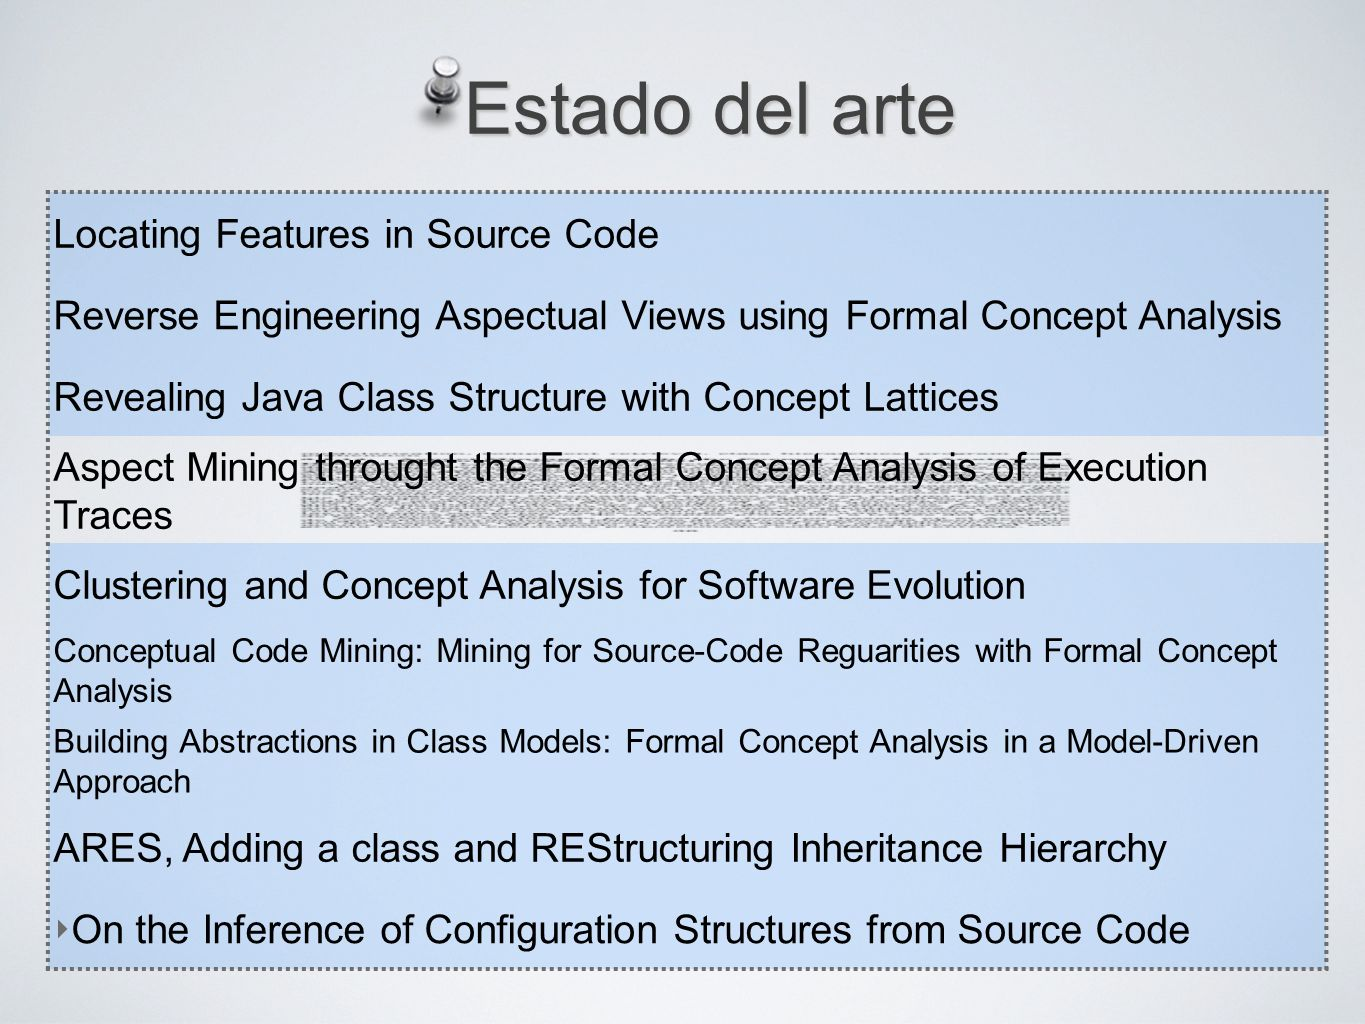 Estado del arte Locating Features in Source Code Reverse Engineering Aspectual Views using Formal Concept Analysis Revealing Java Class Structure with Concept Lattices Aspect Mining throught the Formal Concept Analysis of Execution Traces Clustering and Concept Analysis for Software Evolution Conceptual Code Mining: Mining for Source-Code Reguarities with Formal Concept Analysis Building Abstractions in Class Models: Formal Concept Analysis in a Model-Driven Approach ARES, Adding a class and REStructuring Inheritance Hierarchy On the Inference of Conguration Structures from Source Code